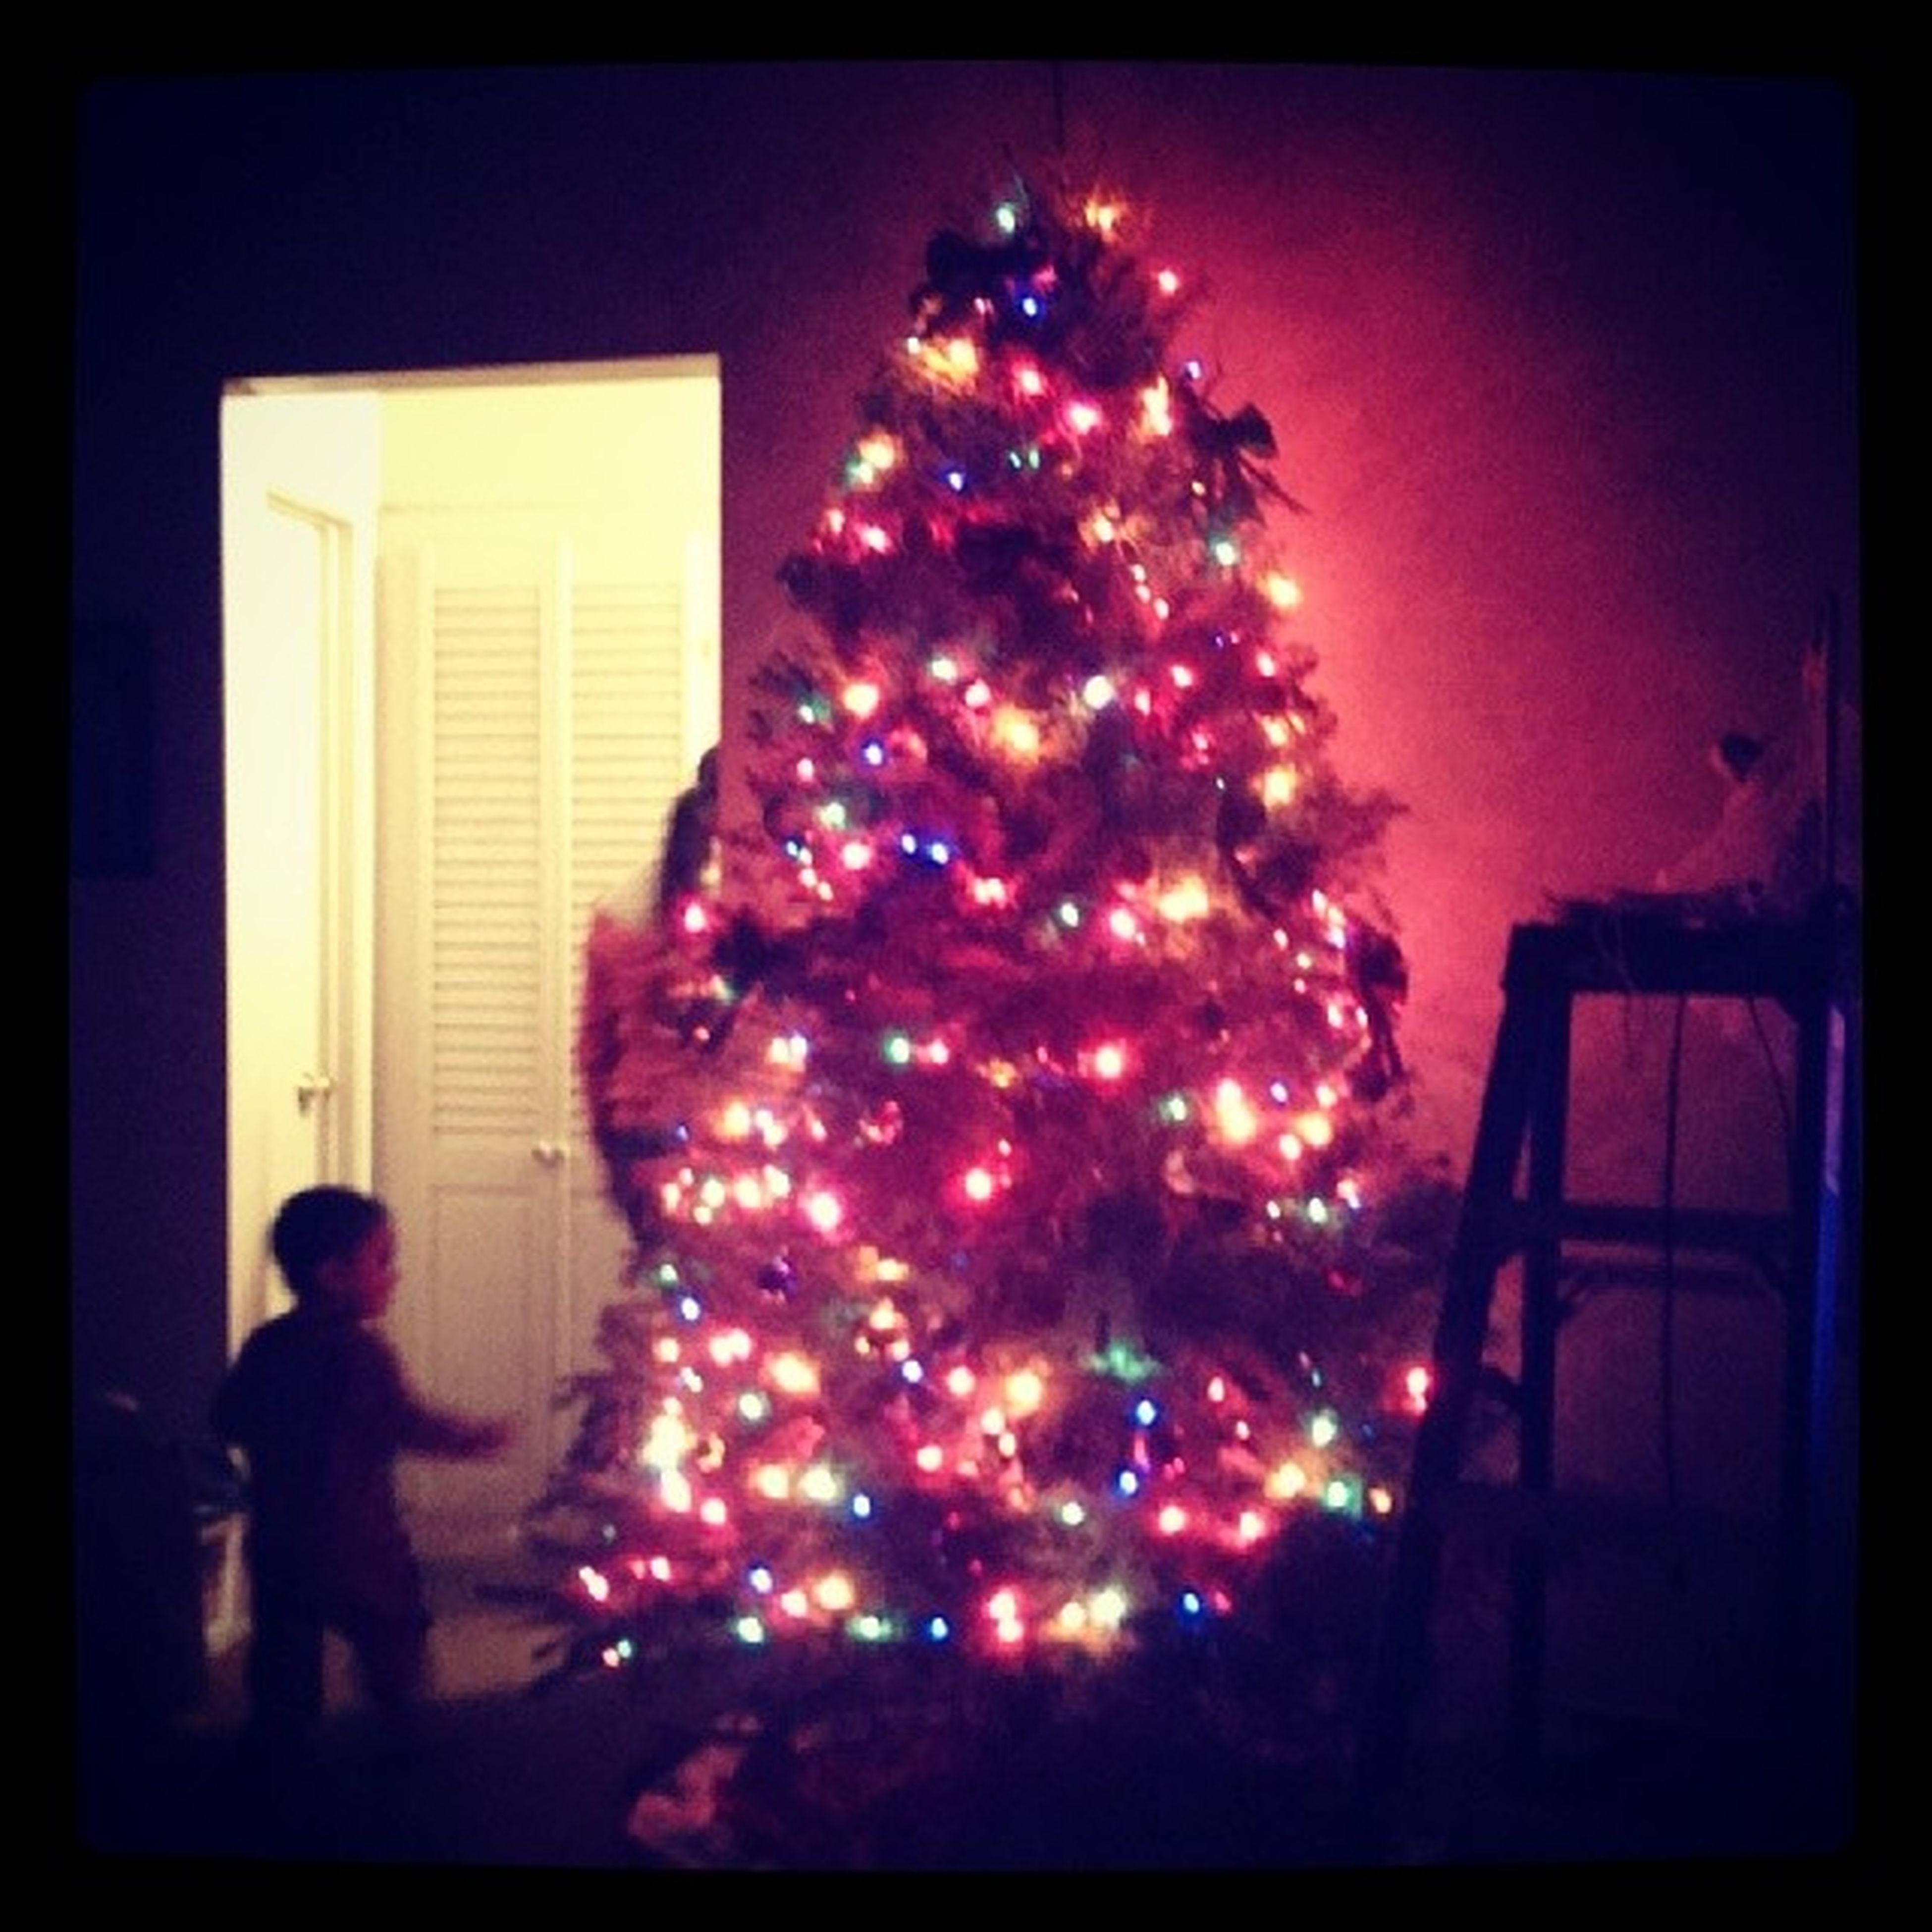 indoors, illuminated, transfer print, celebration, auto post production filter, night, lifestyles, christmas, decoration, leisure activity, christmas decoration, window, arts culture and entertainment, red, person, christmas tree, lighting equipment, glass - material